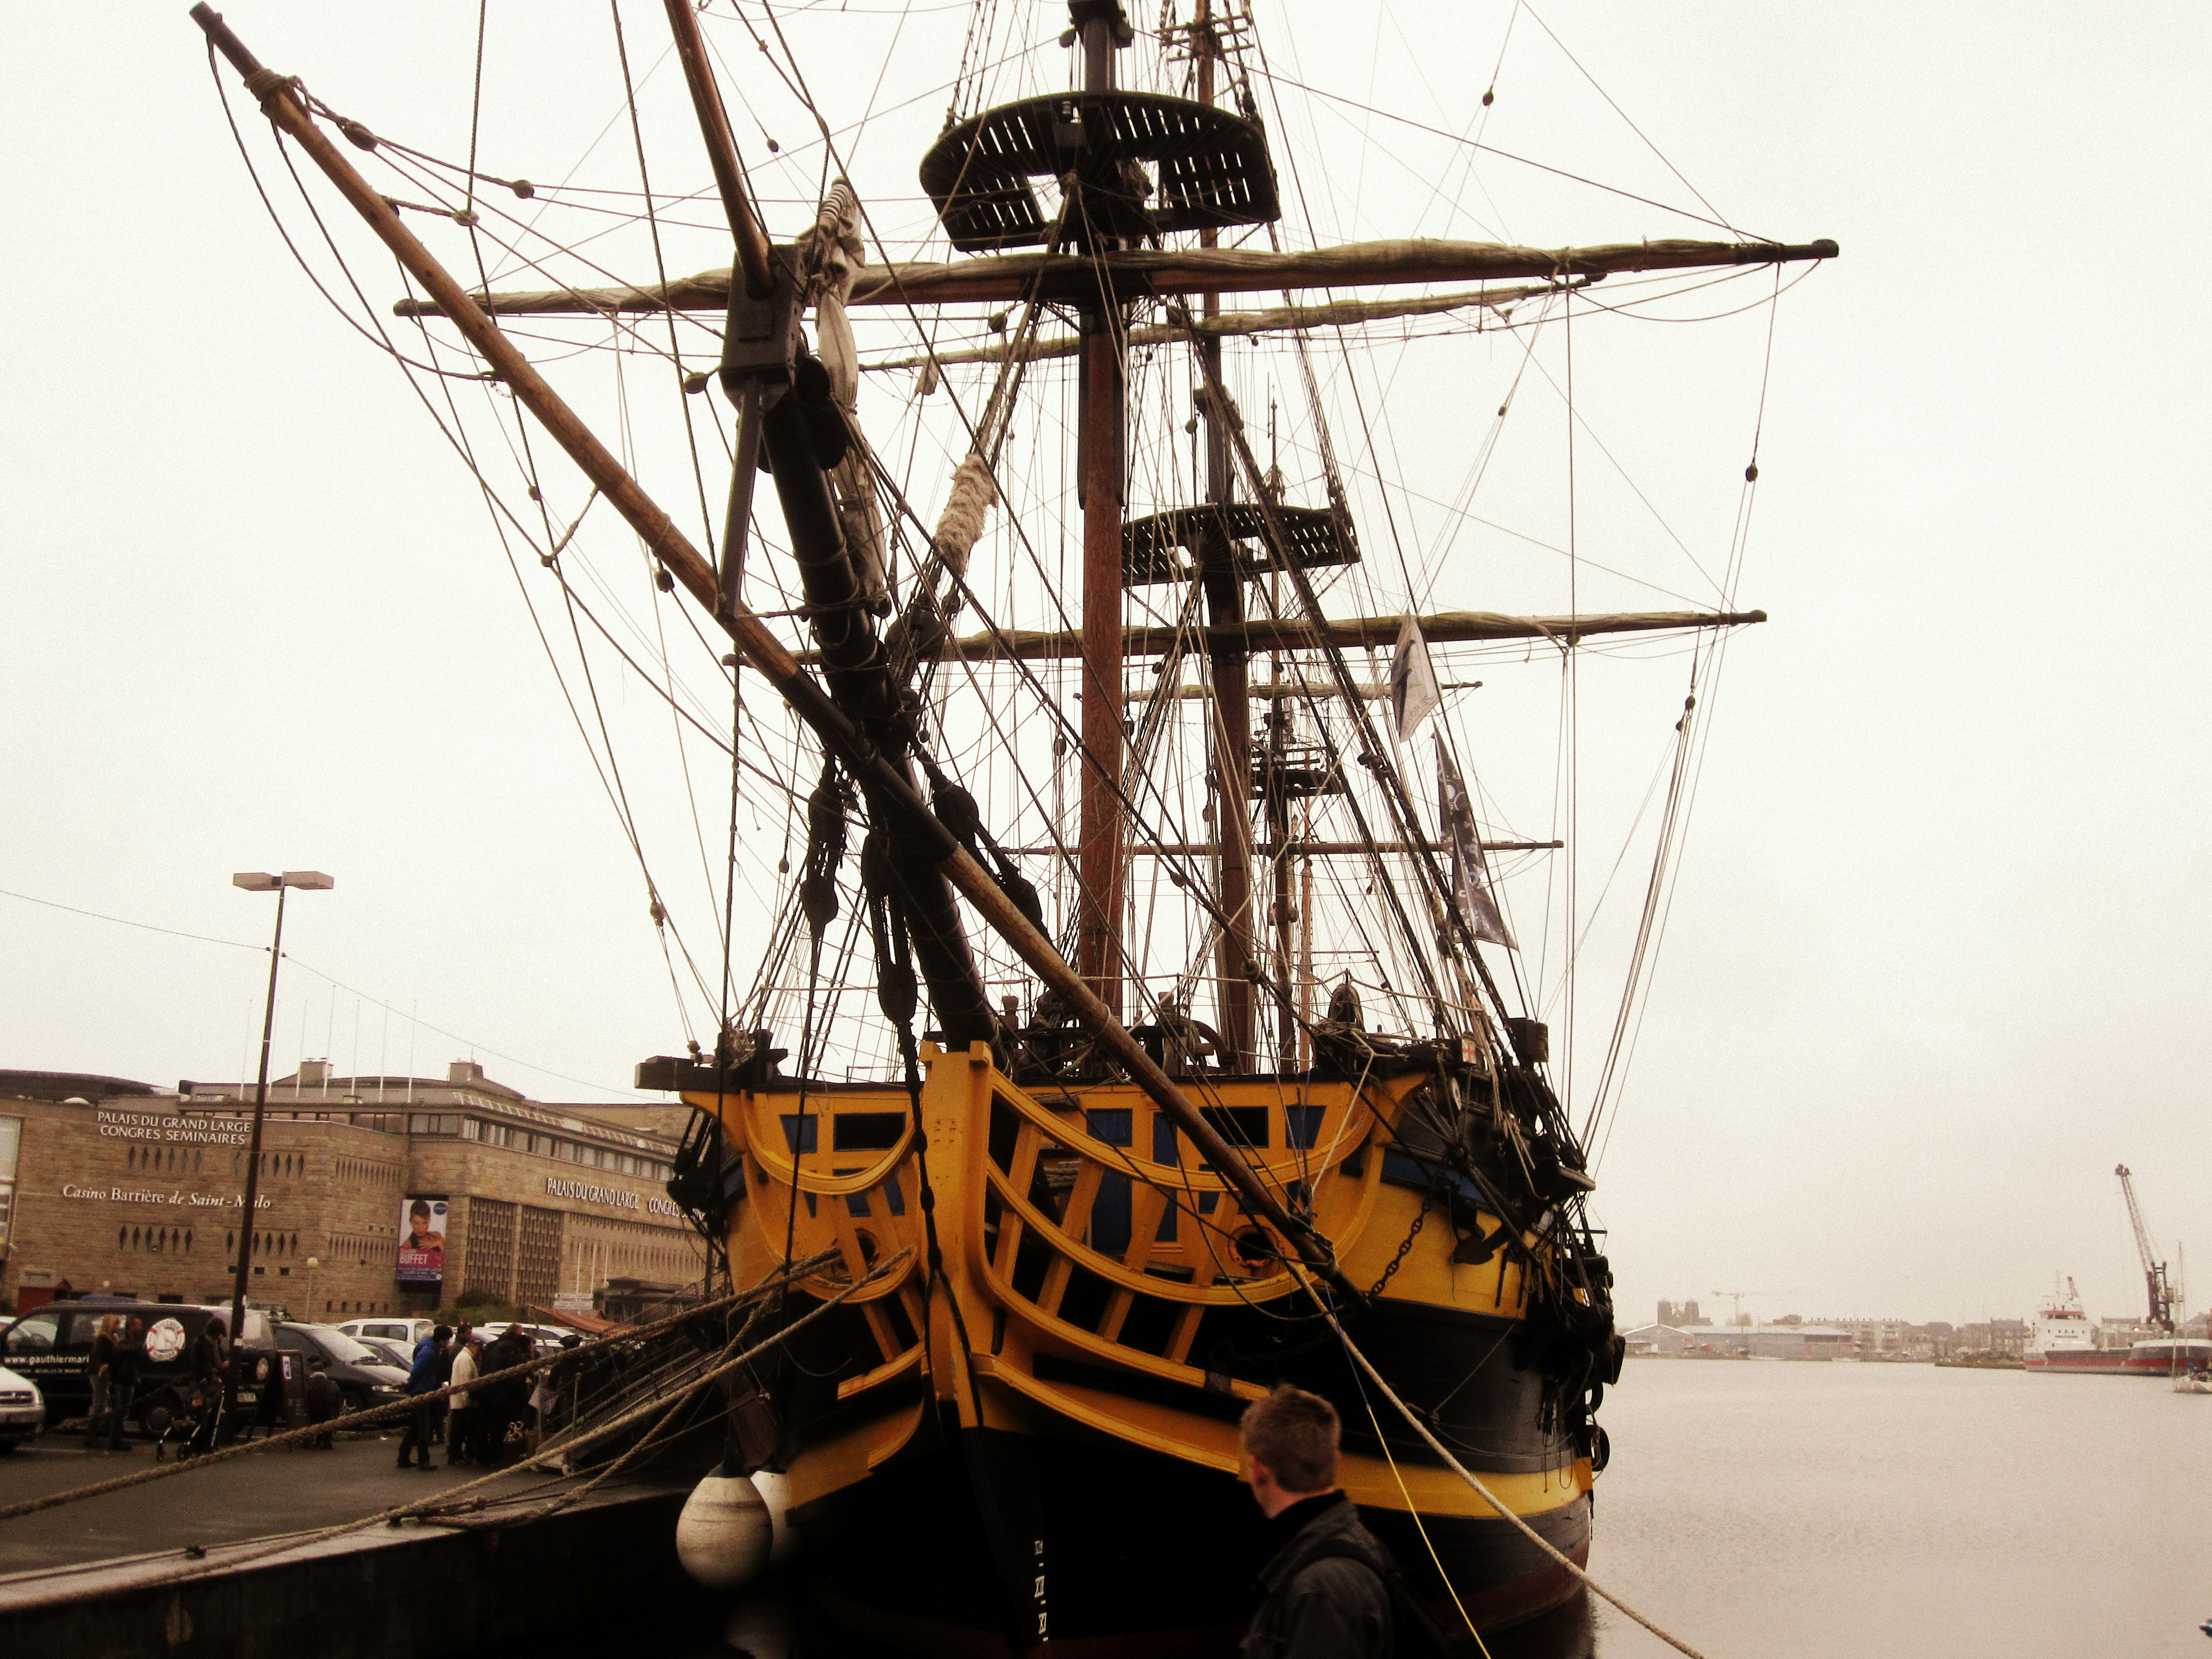 A Real, Live Pirate Ship - Posted on April 16th, 2012 by ...